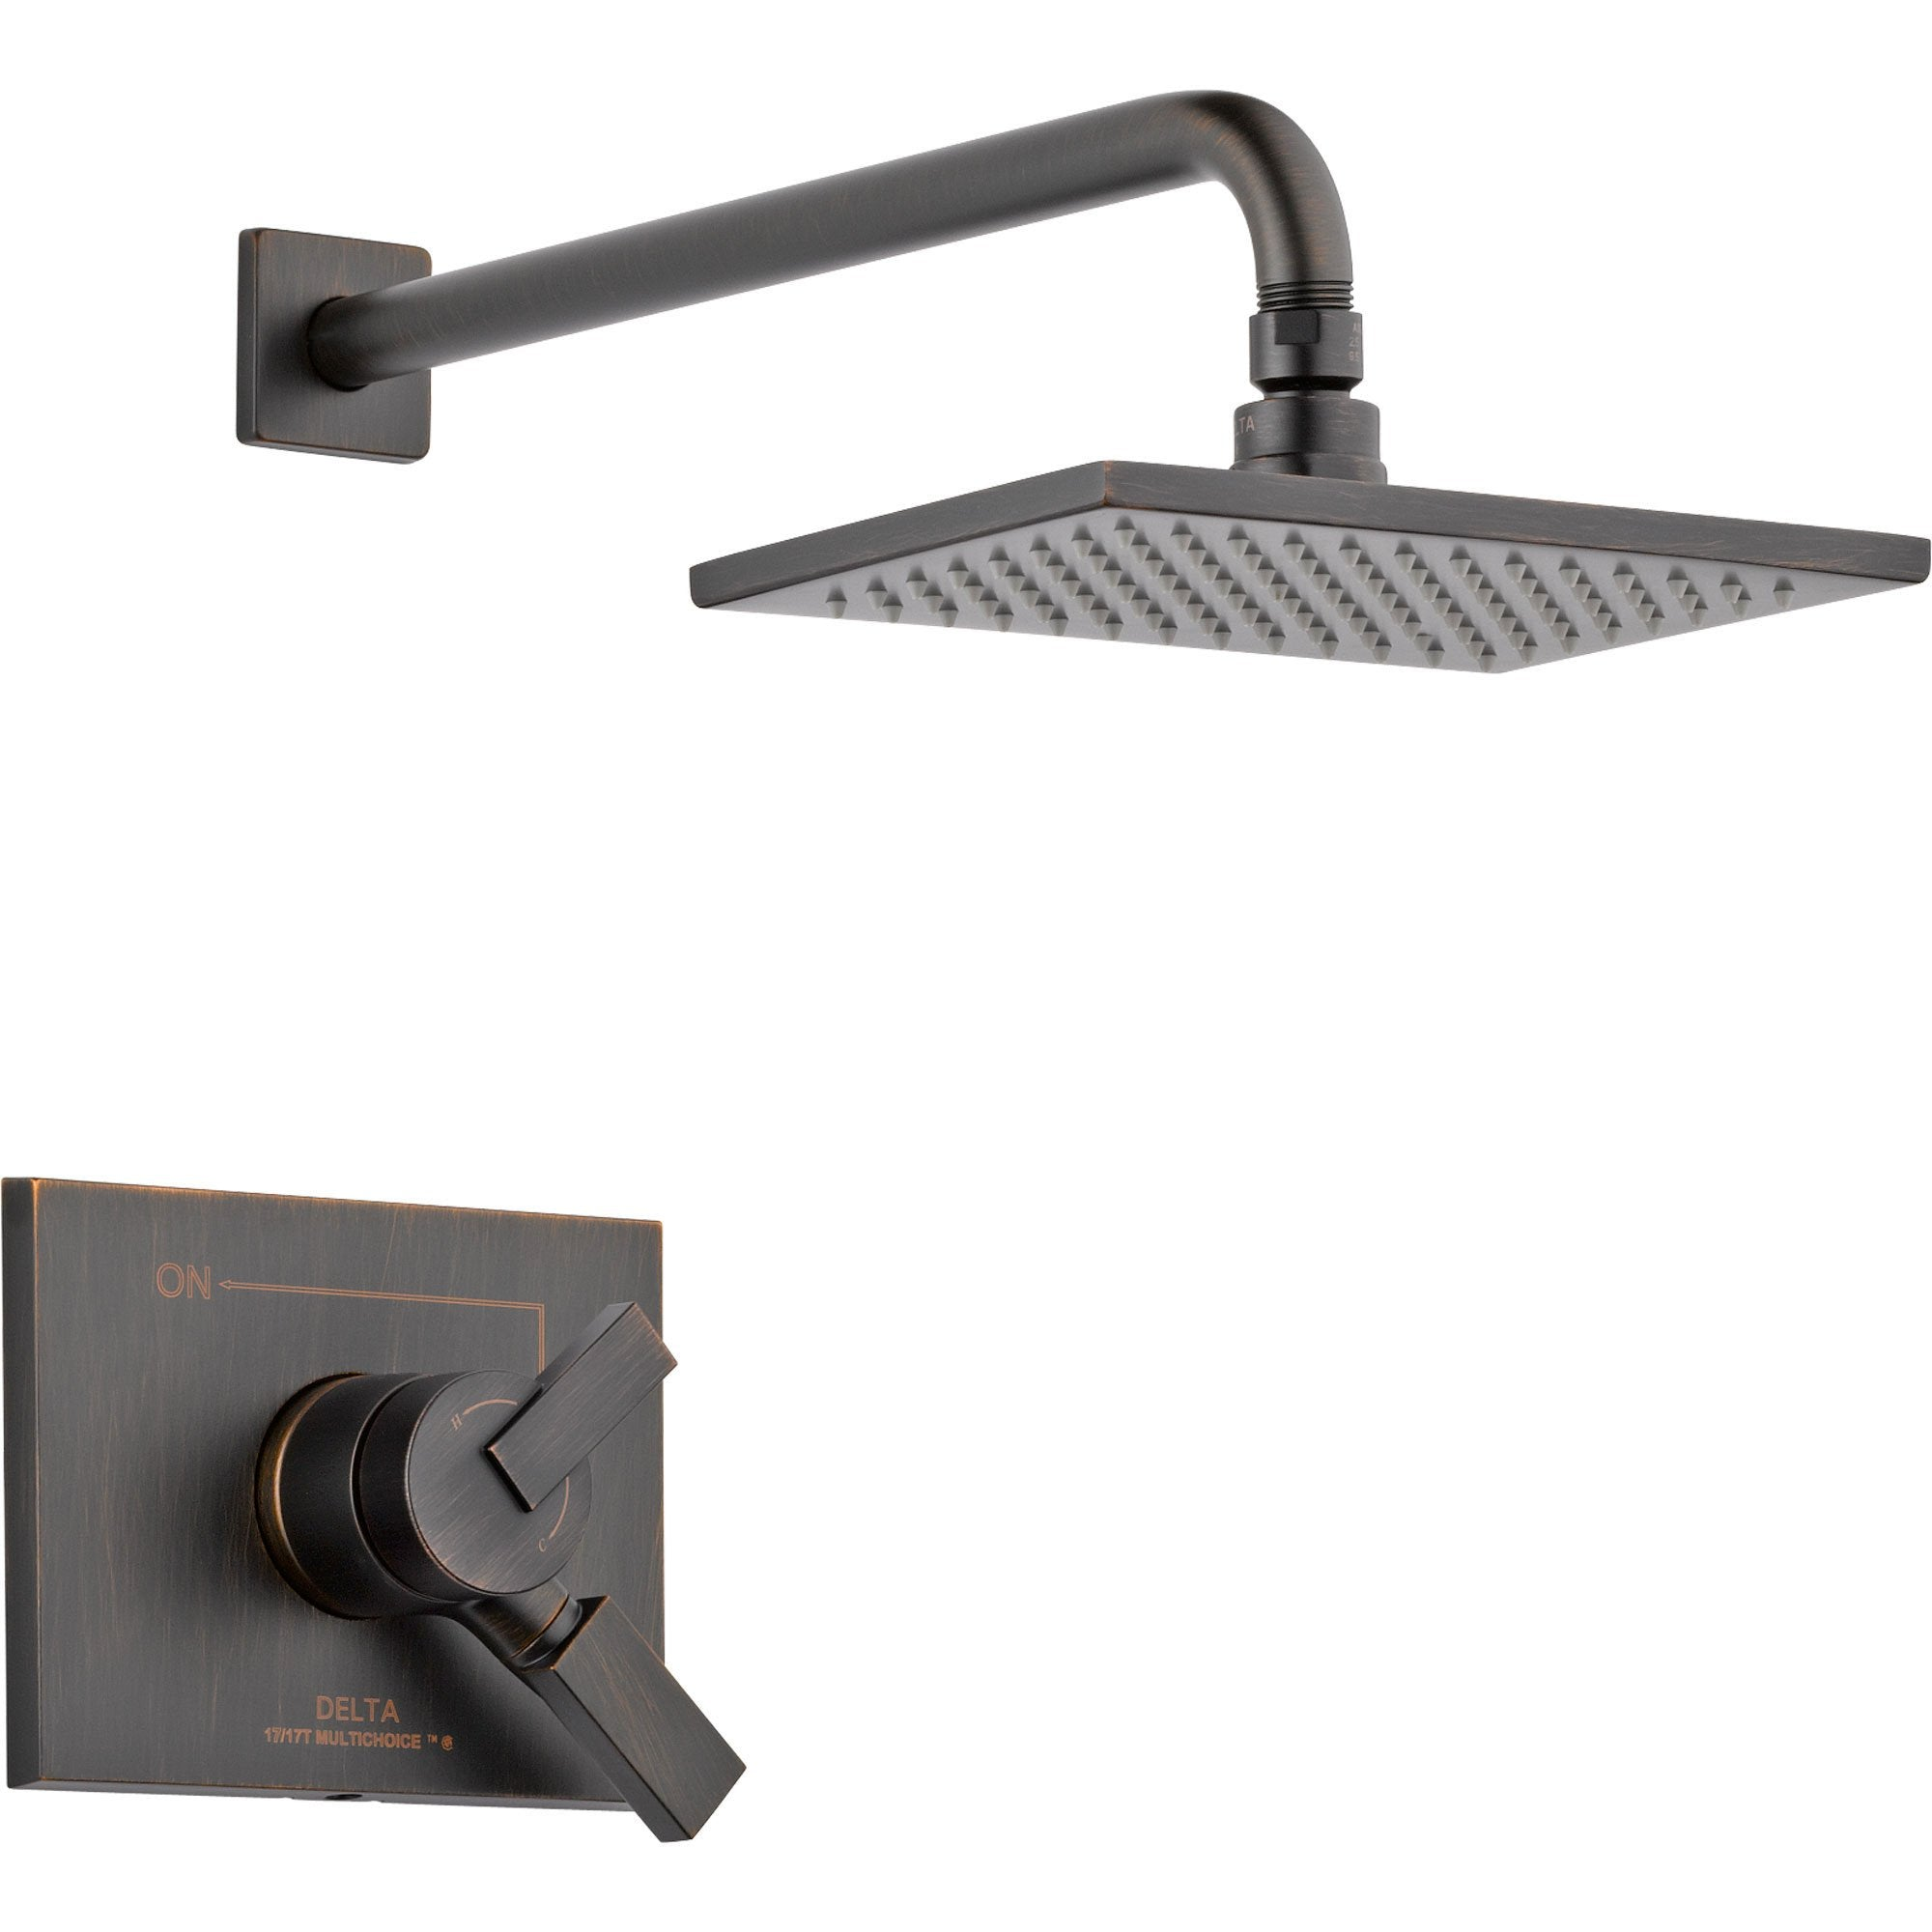 Delta Vero Venetian Bronze Temp/Volume Control Shower Faucet with Valve D755V